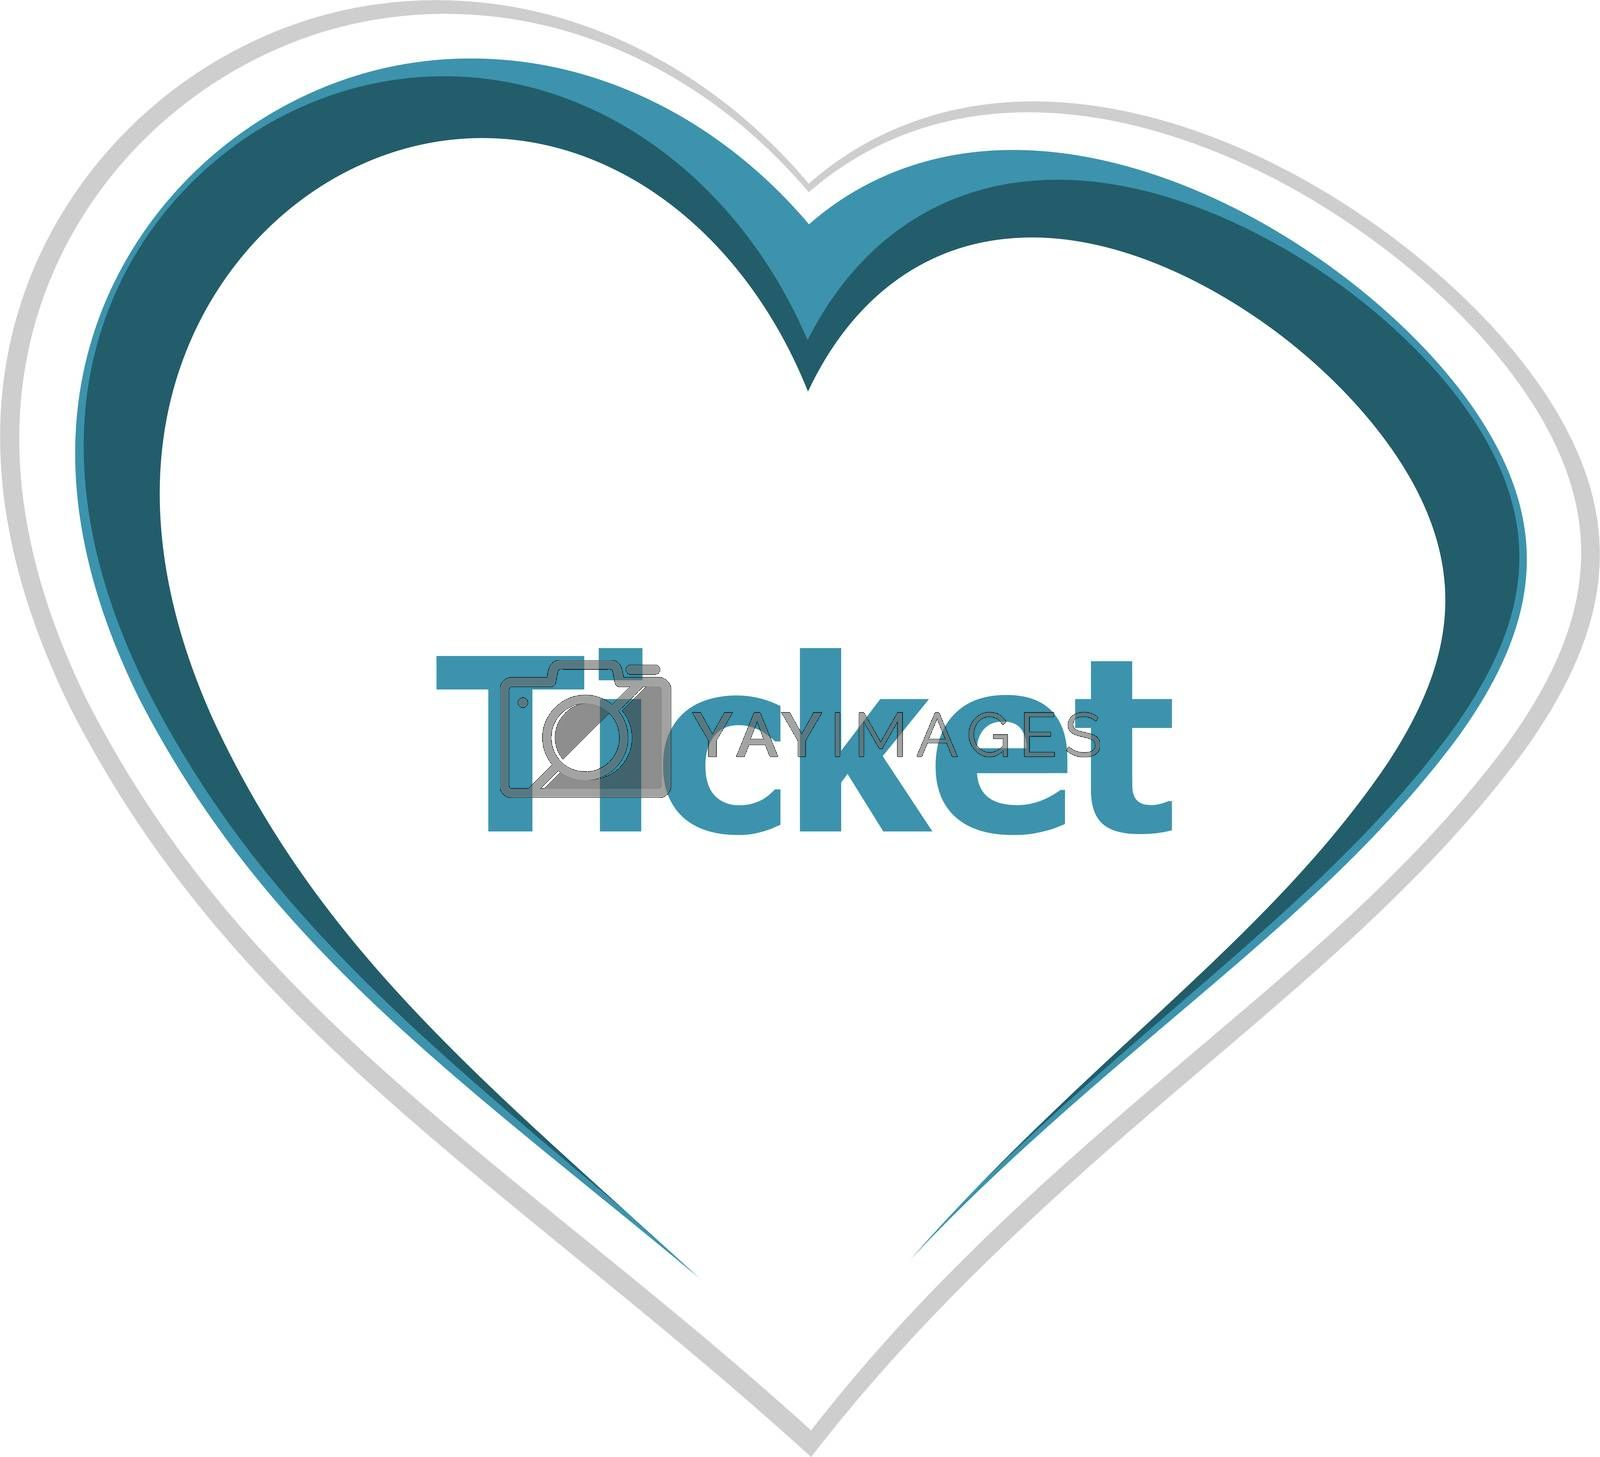 Text Ticket. Business concept